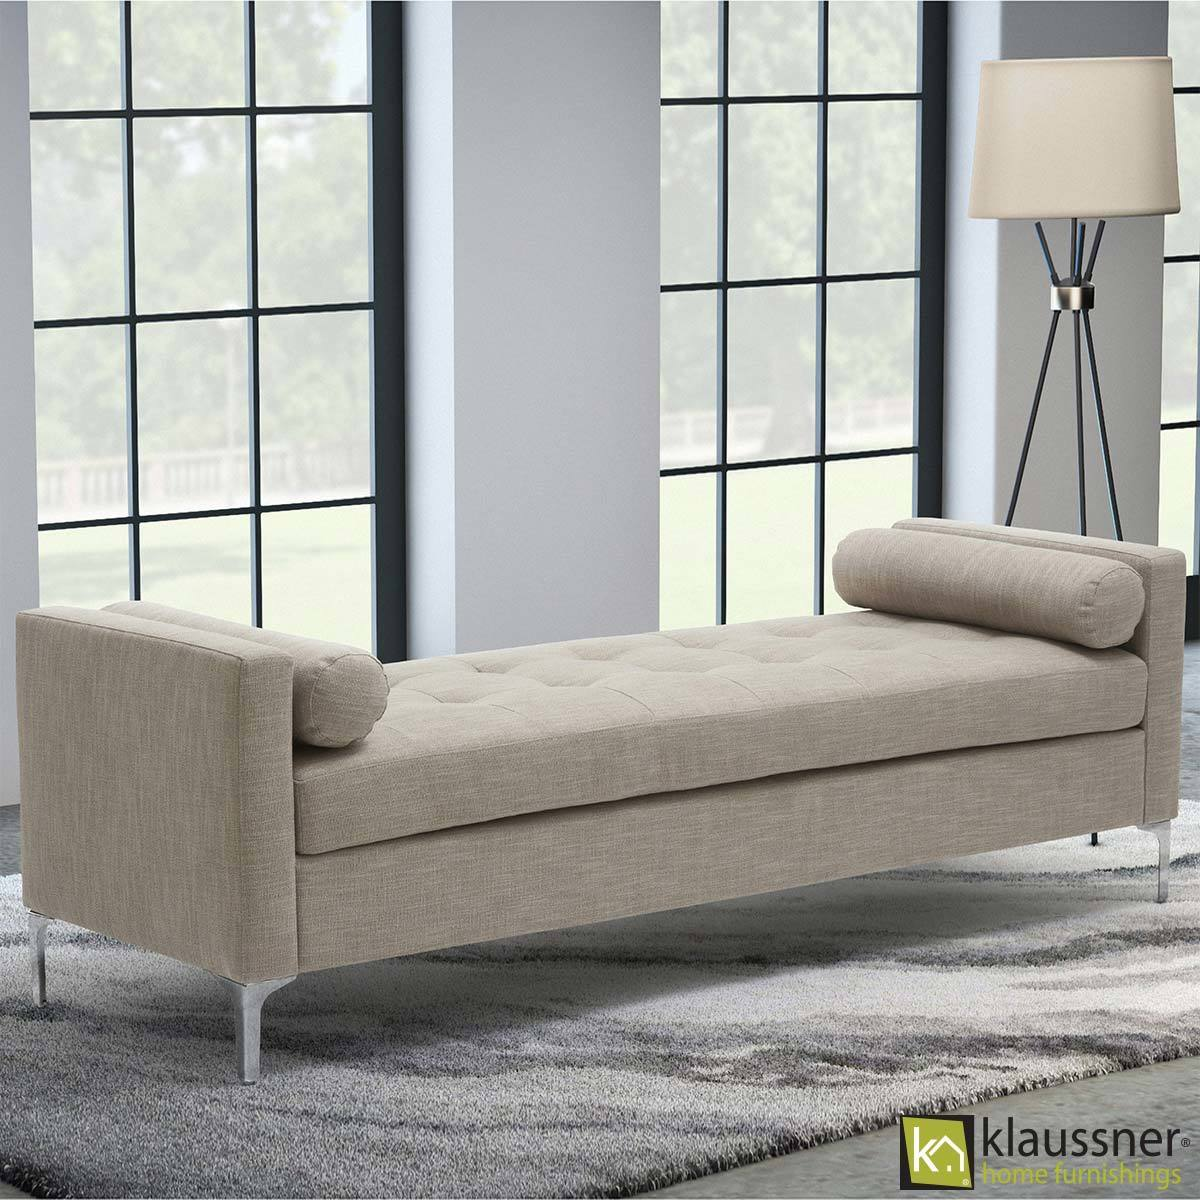 Accent Chairs At Costco Klaussner Tufted Fabric Bench With 2 Accent Pillows Costco Uk